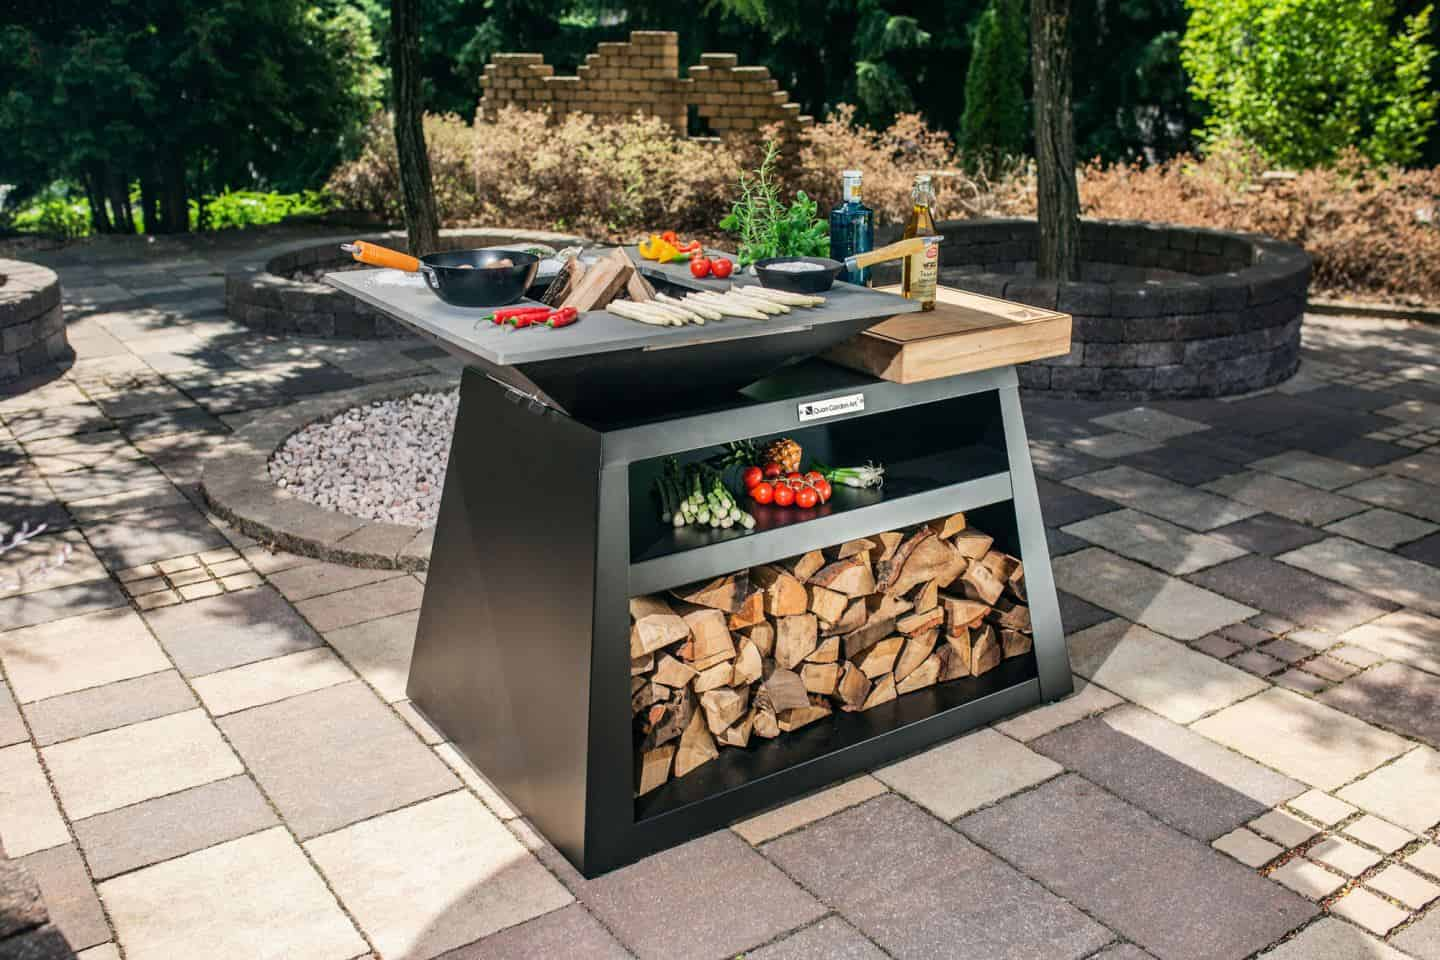 A wood-fired BBQ on the patio is a great way to entertain friends and family for a summer staycation in the garden